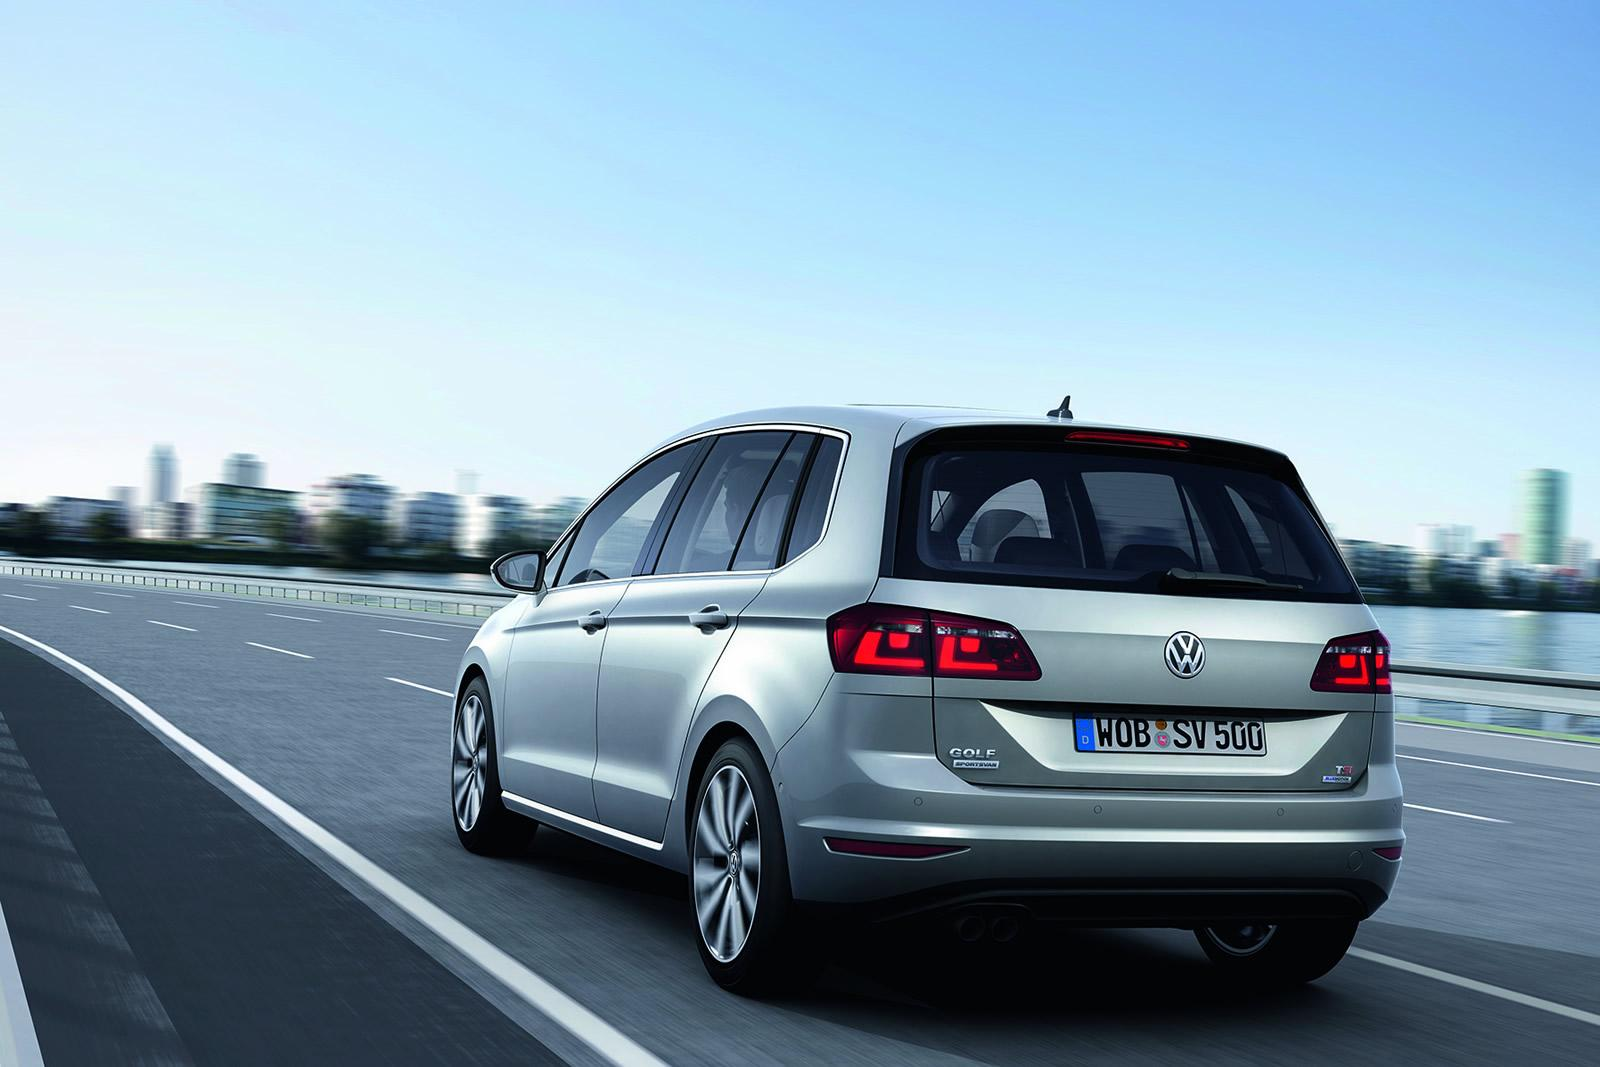 Volkswagen Golf Vw Golf Sportsvan Concept Unveiled Is Actually The Golf